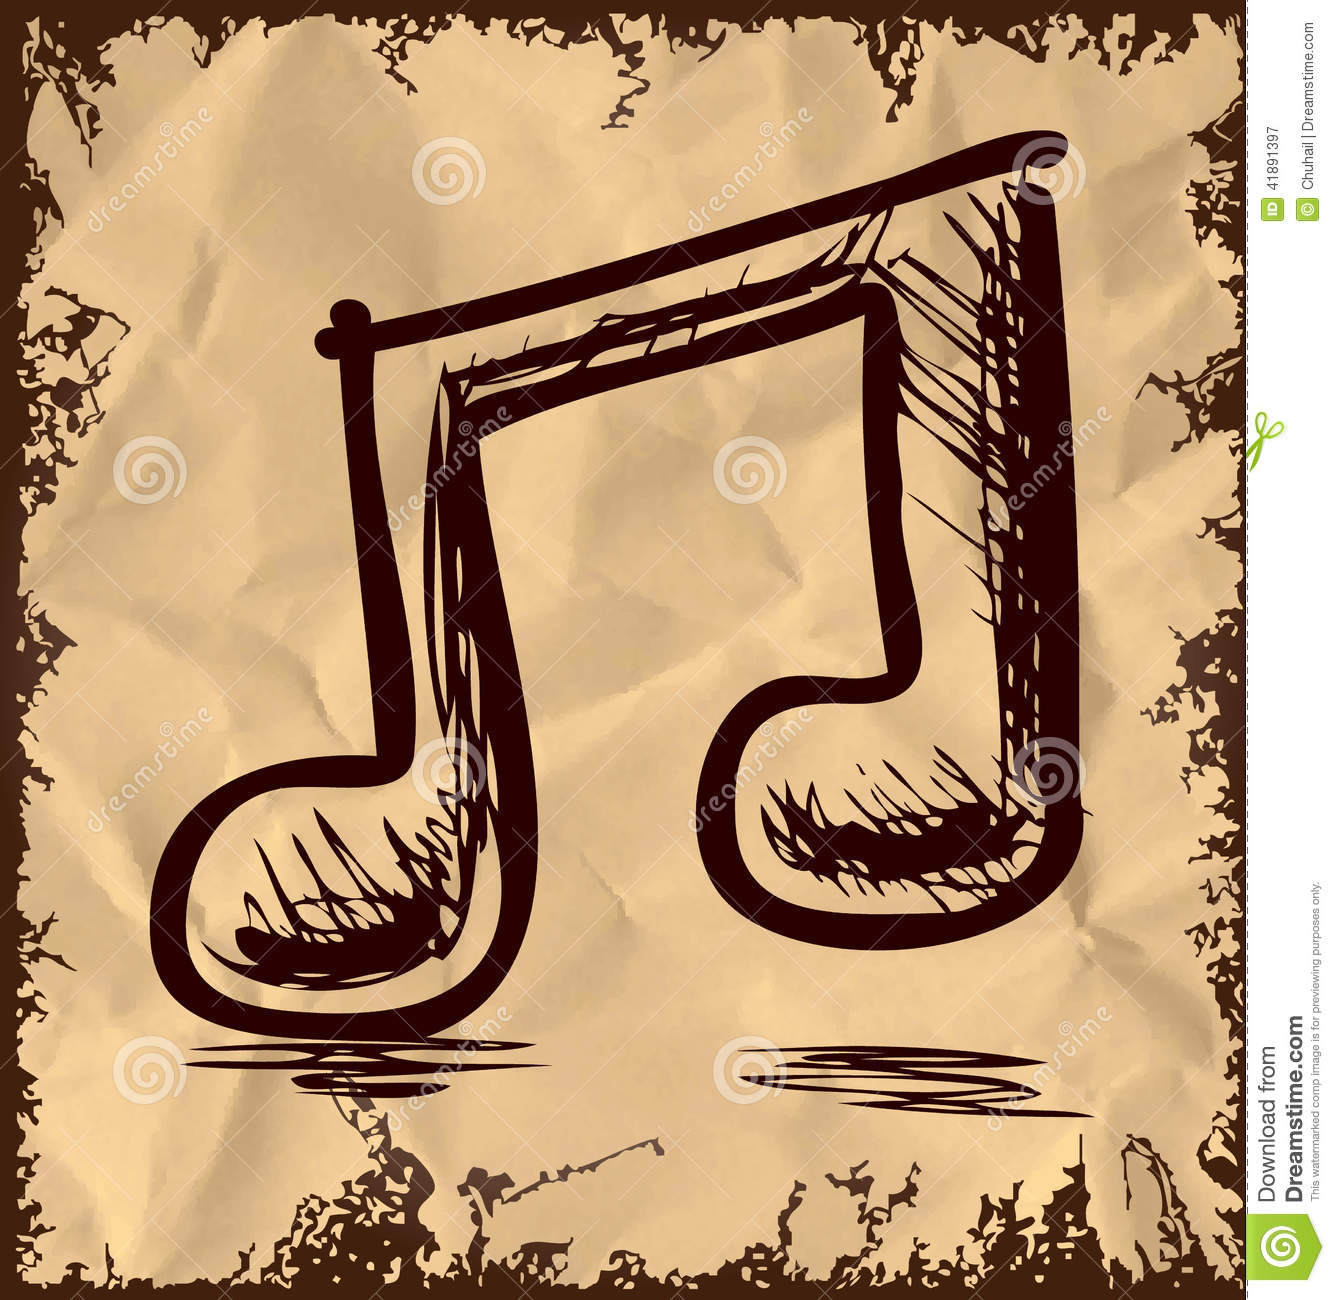 Double Music Note On Vintage Background Stock Image - Image of ...